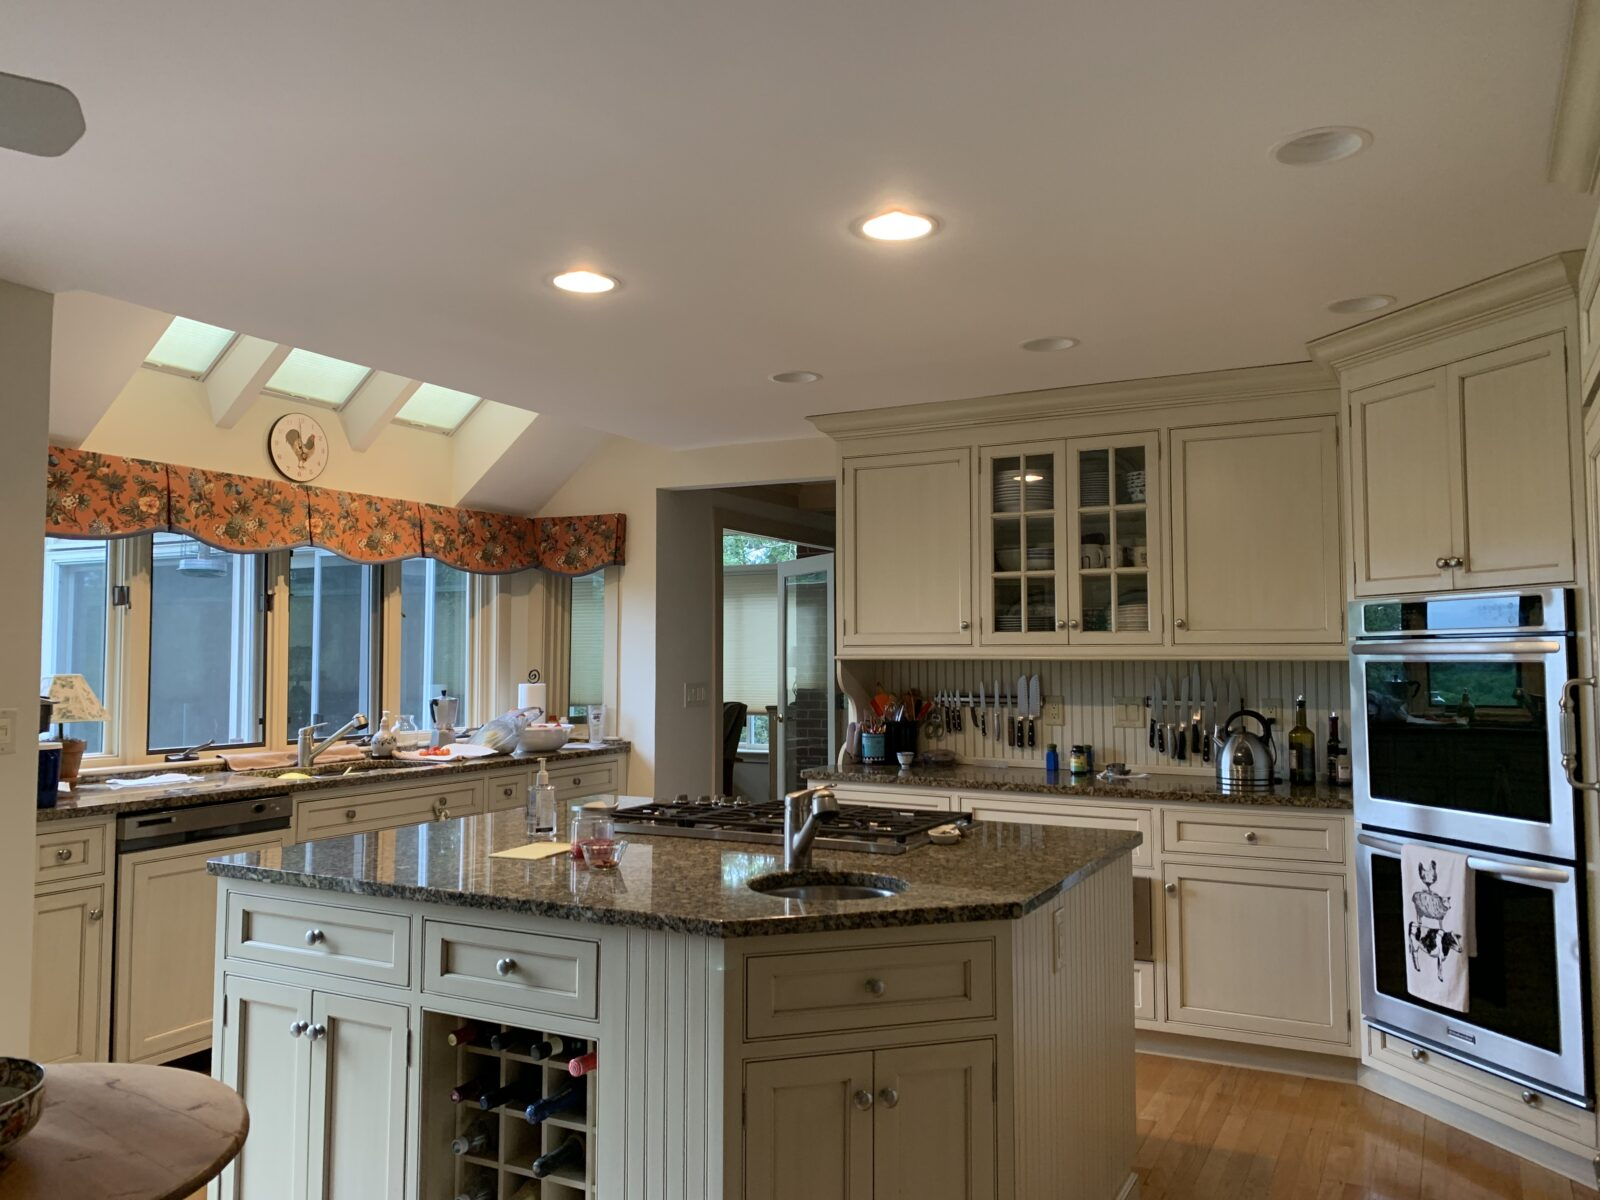 Baird Home Solutions - White painted kitchen cabinets and new countertops